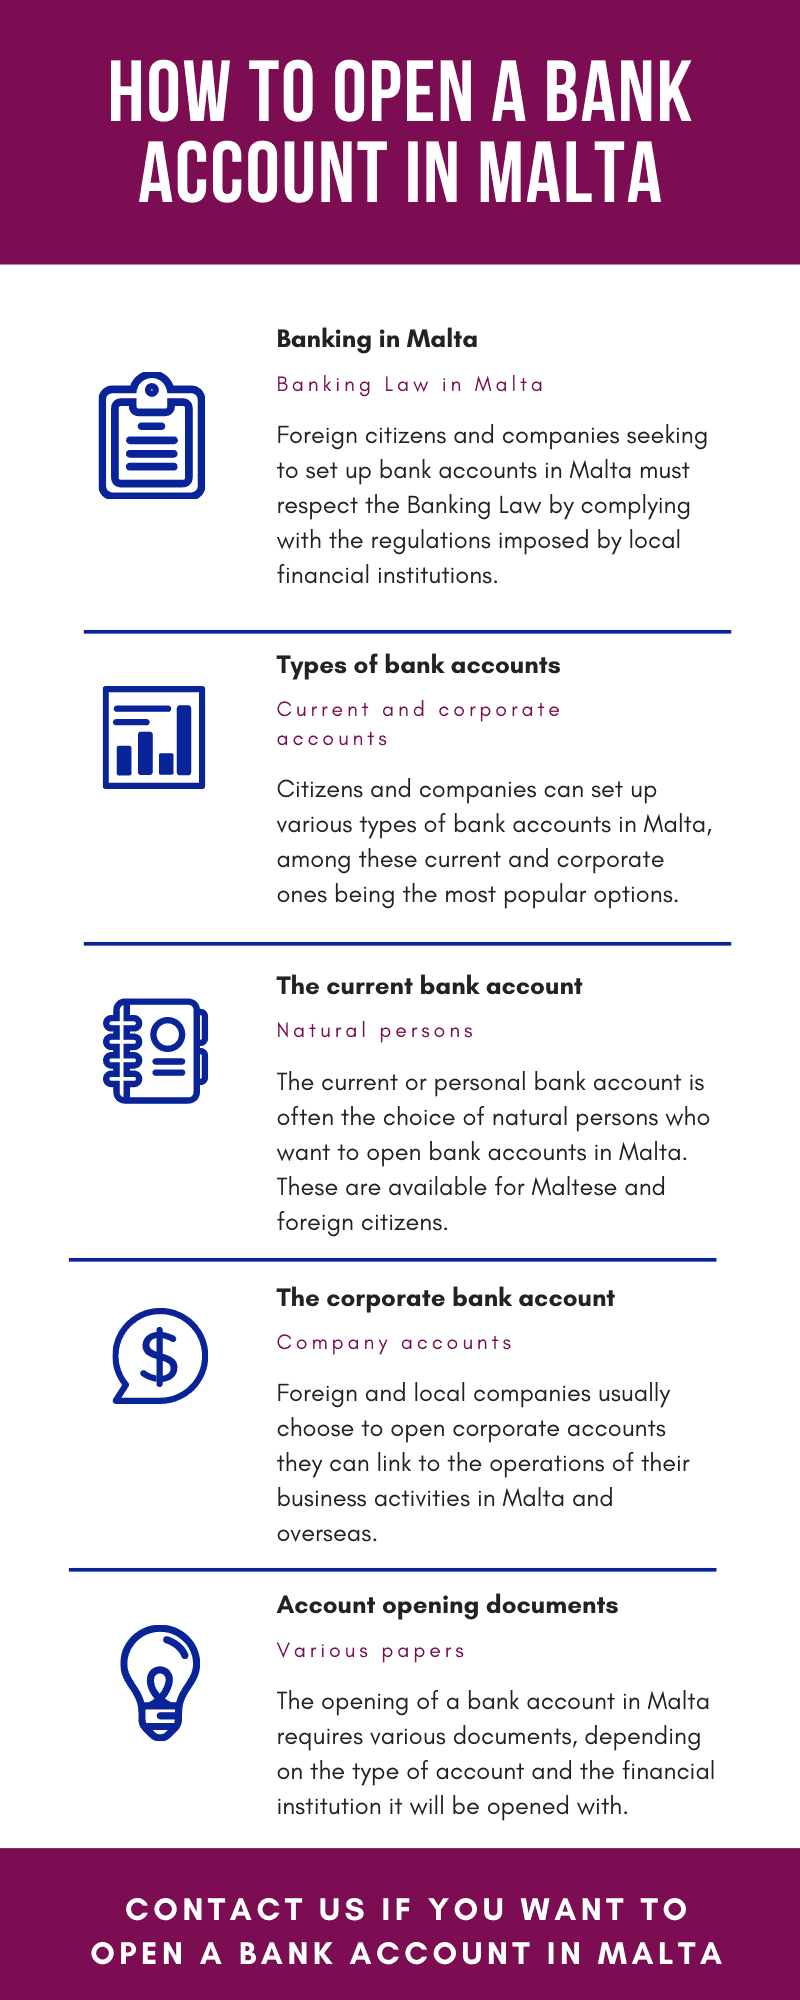 How to open a bank account in Malta